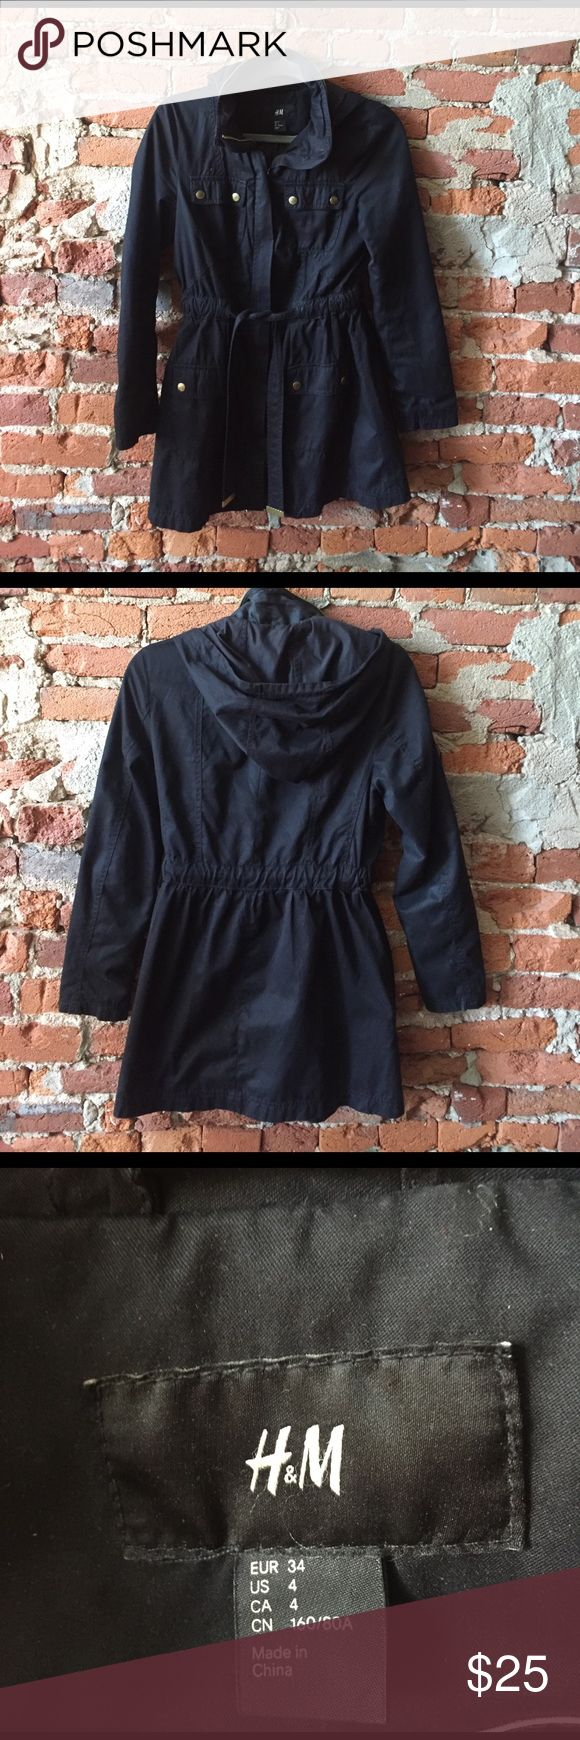 Black H&M trench coat with hood Black H&M trench coat with hood. Great light spring or fall jacket, hits mid-thigh. Cute gold zippers and buttons. Has a flattering tie around the waist. Size 4. H&M Jackets & Coats